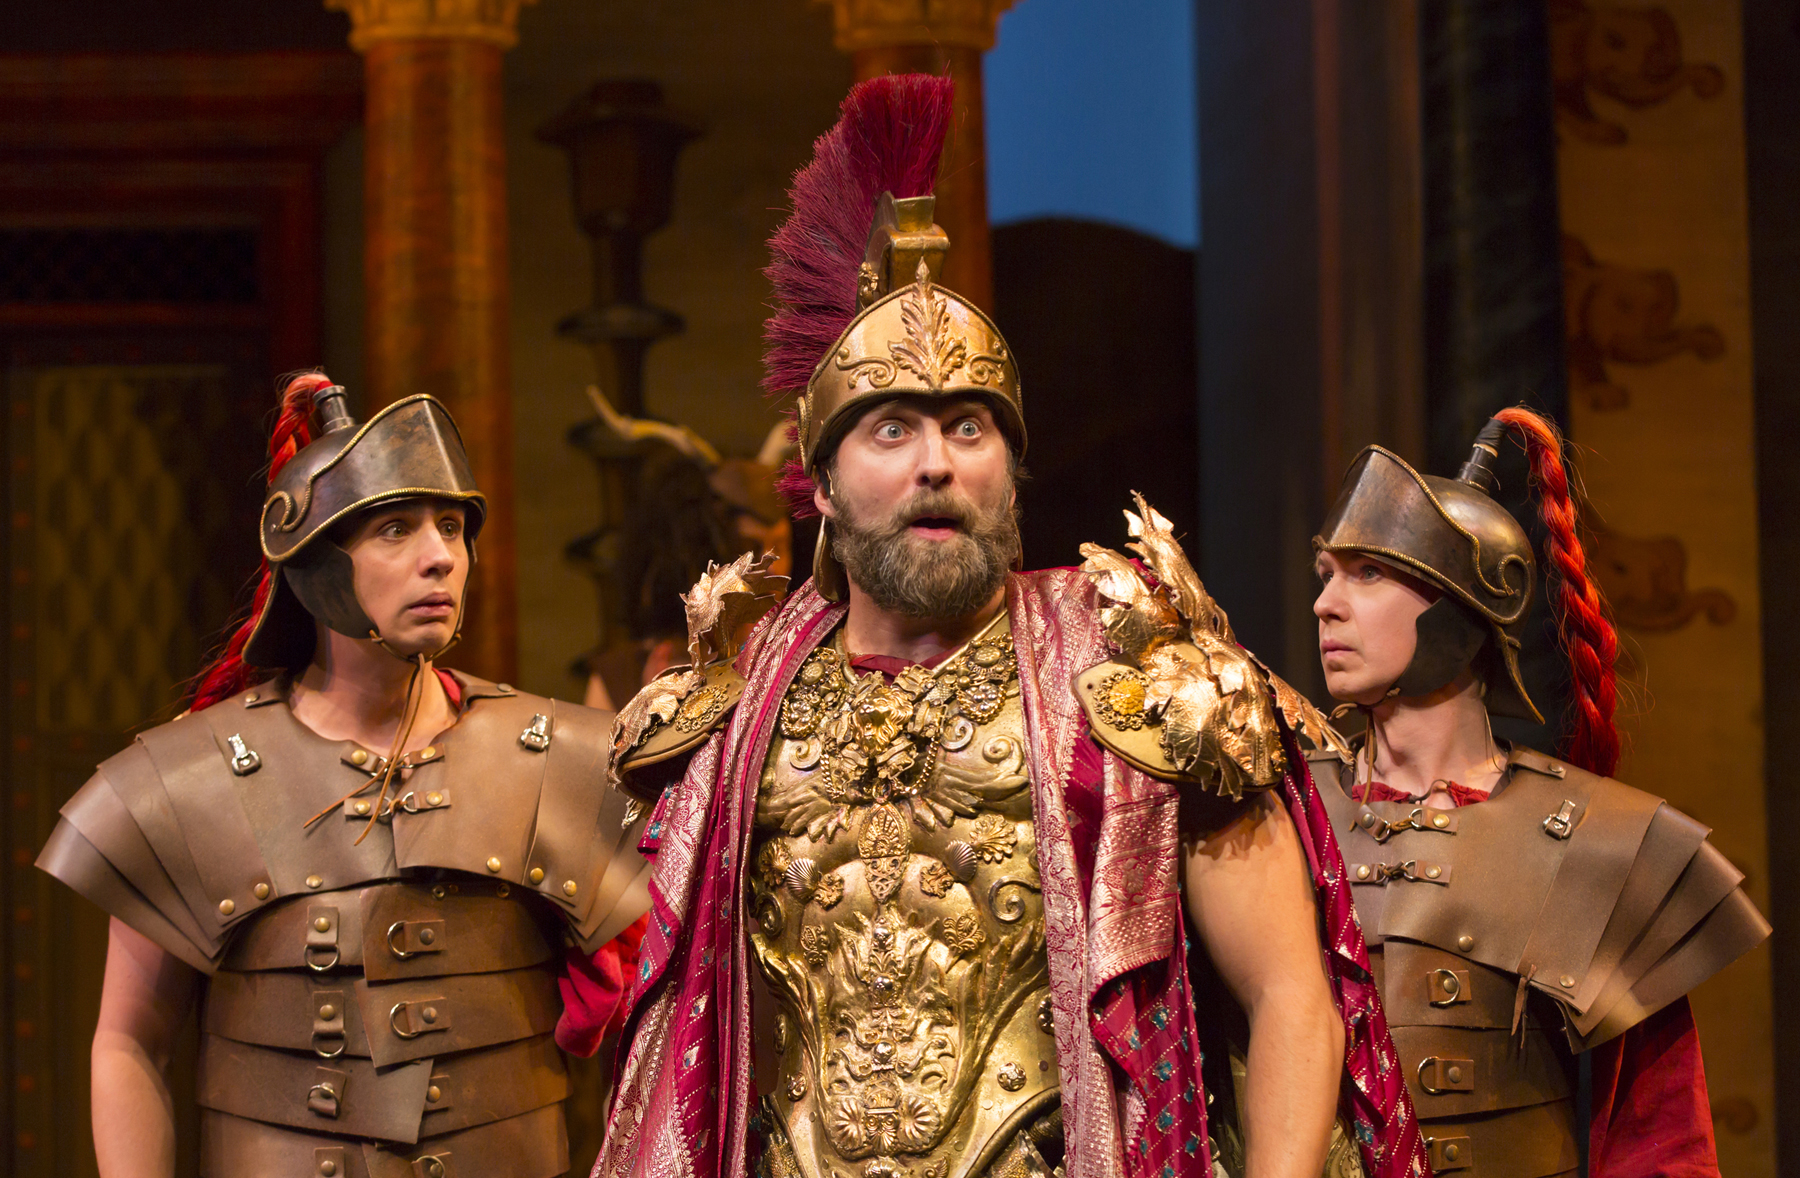 Bobby Conte Thornton (Roman Soldier), Graham Rowat (Miles Gloriosus), and David Turner (Roman Soldier) in A Funny Thing Happened on the Way to the Forum at Two River Theater. Photo by T. Charles Erickson.